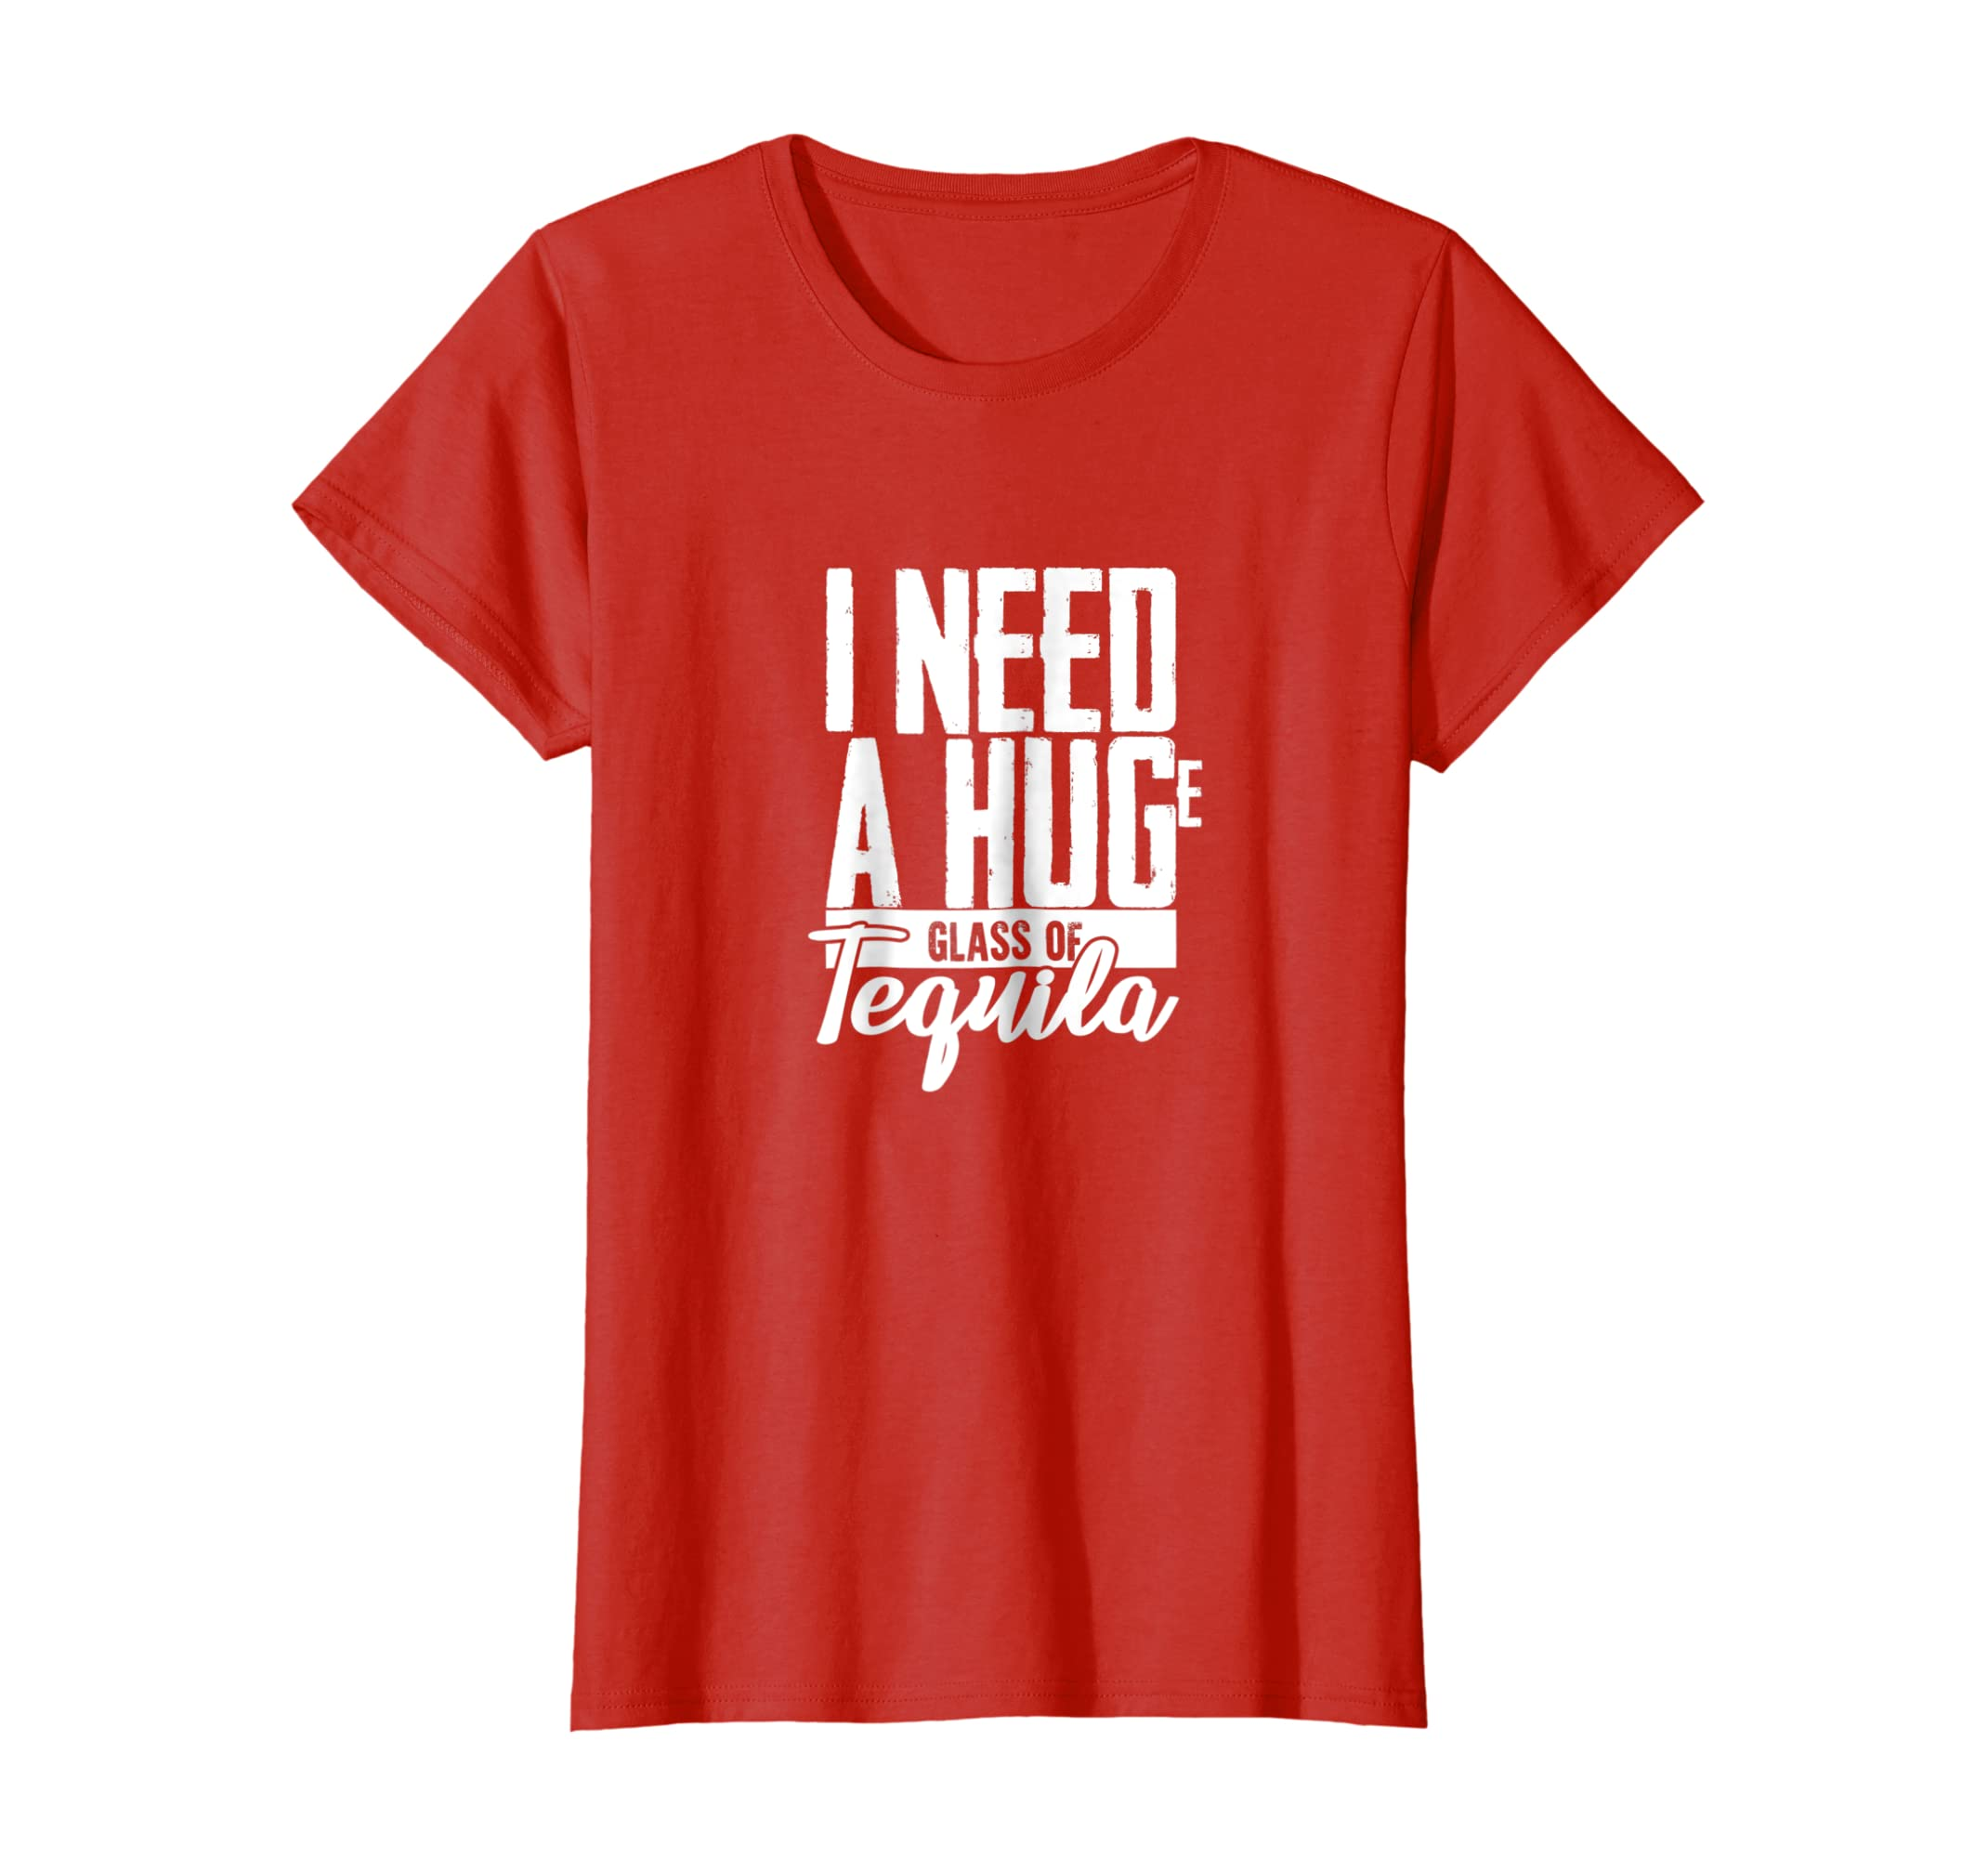 970d3150d Amazon.com: I Need a Huge Glass of Tequila T-shirt - Funny Tequila Shirt:  Clothing